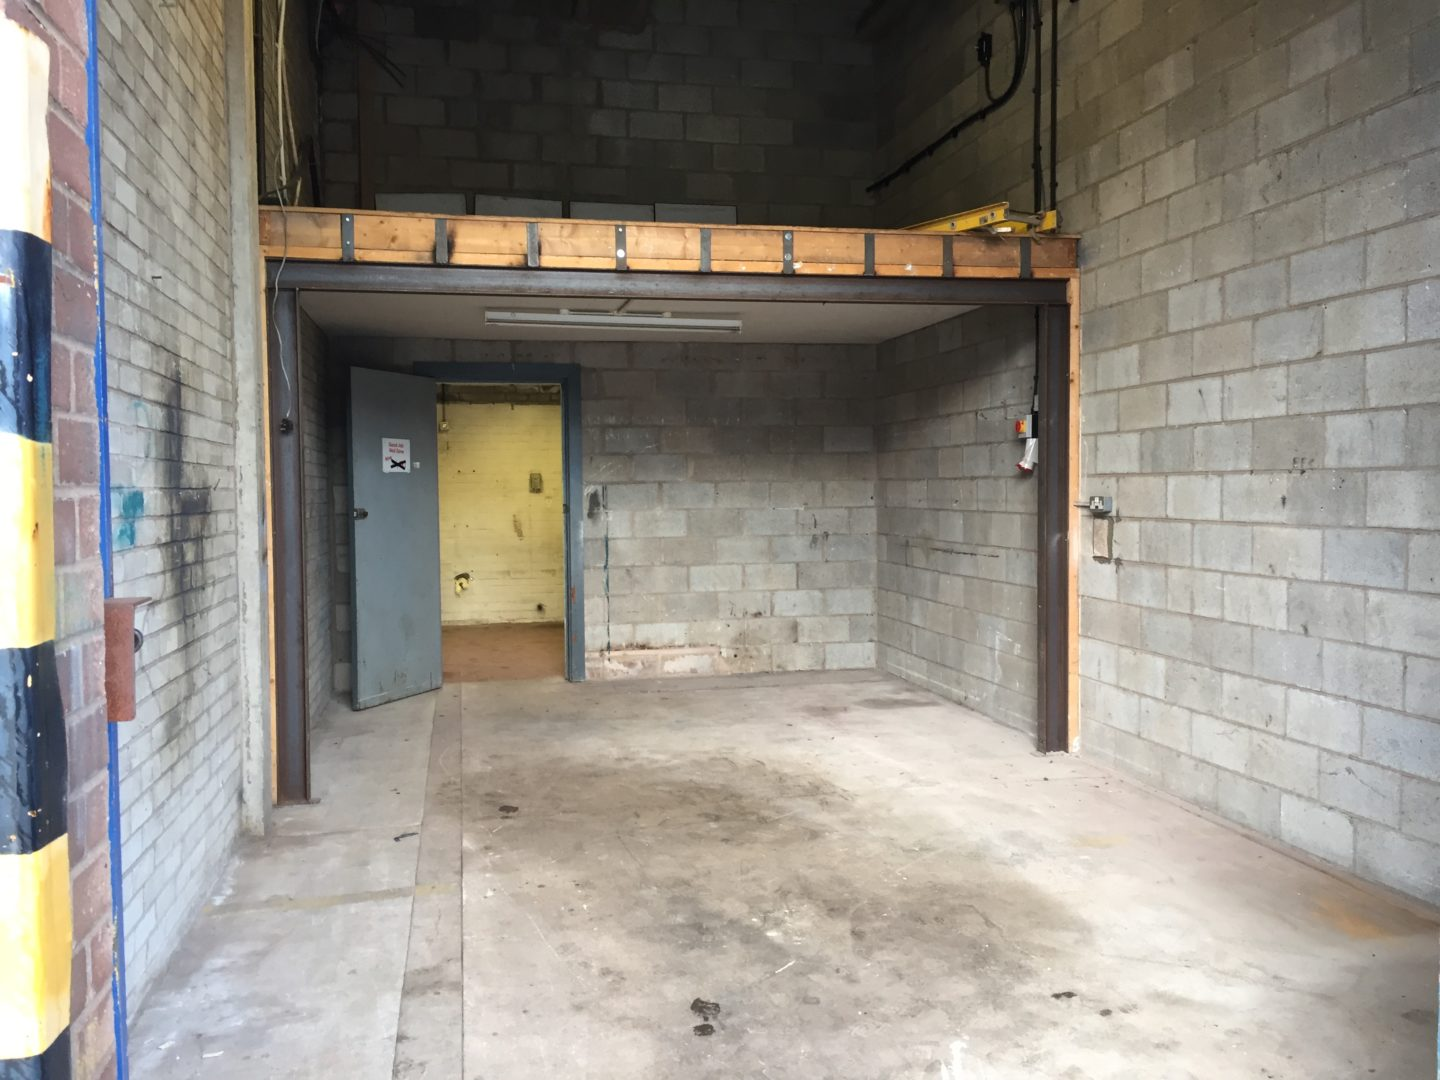 Unit 8, Newtongate Industrial Estate, Penrith – UNDER OFFER